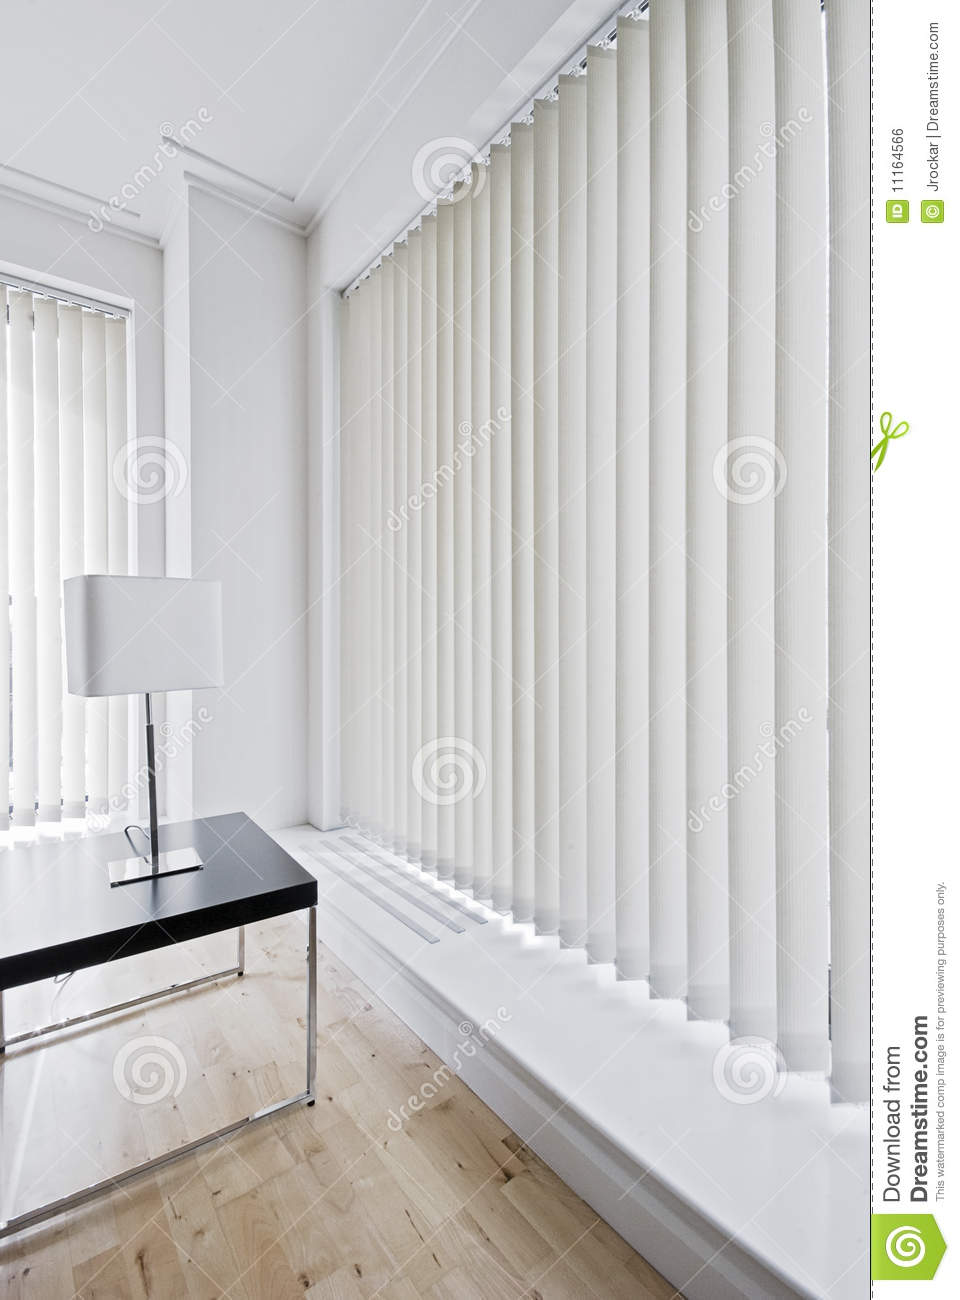 Vertical Blinds Royalty Free Stock Image Image 11164566